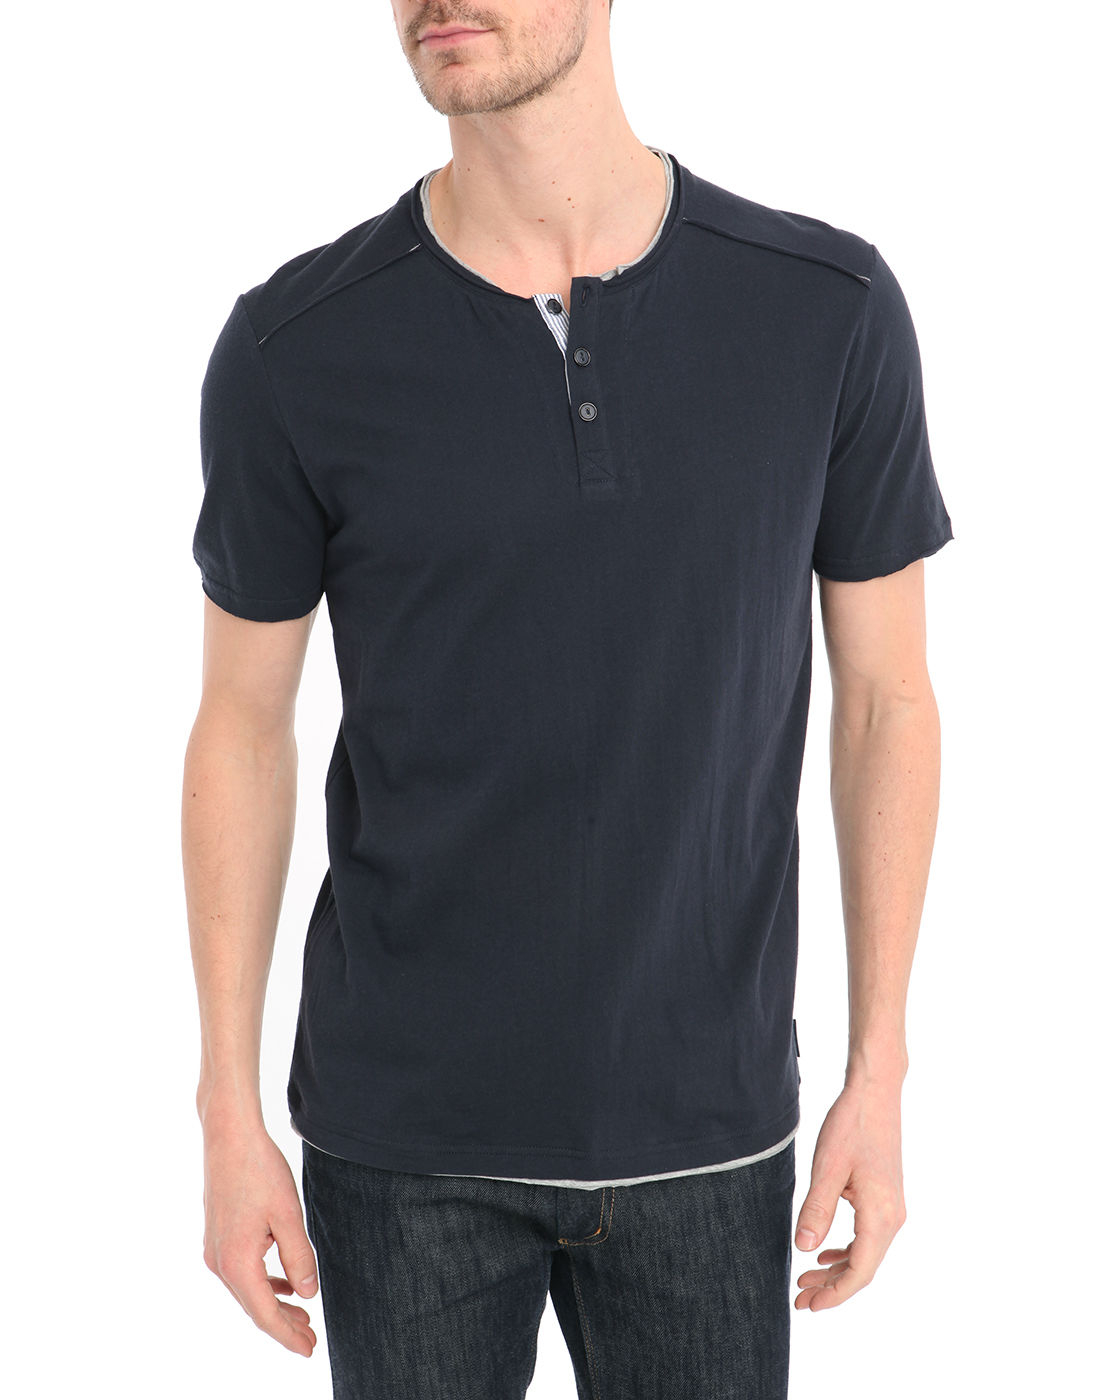 Harris Wilson Navy T Shirt With Double Button Up Collar In